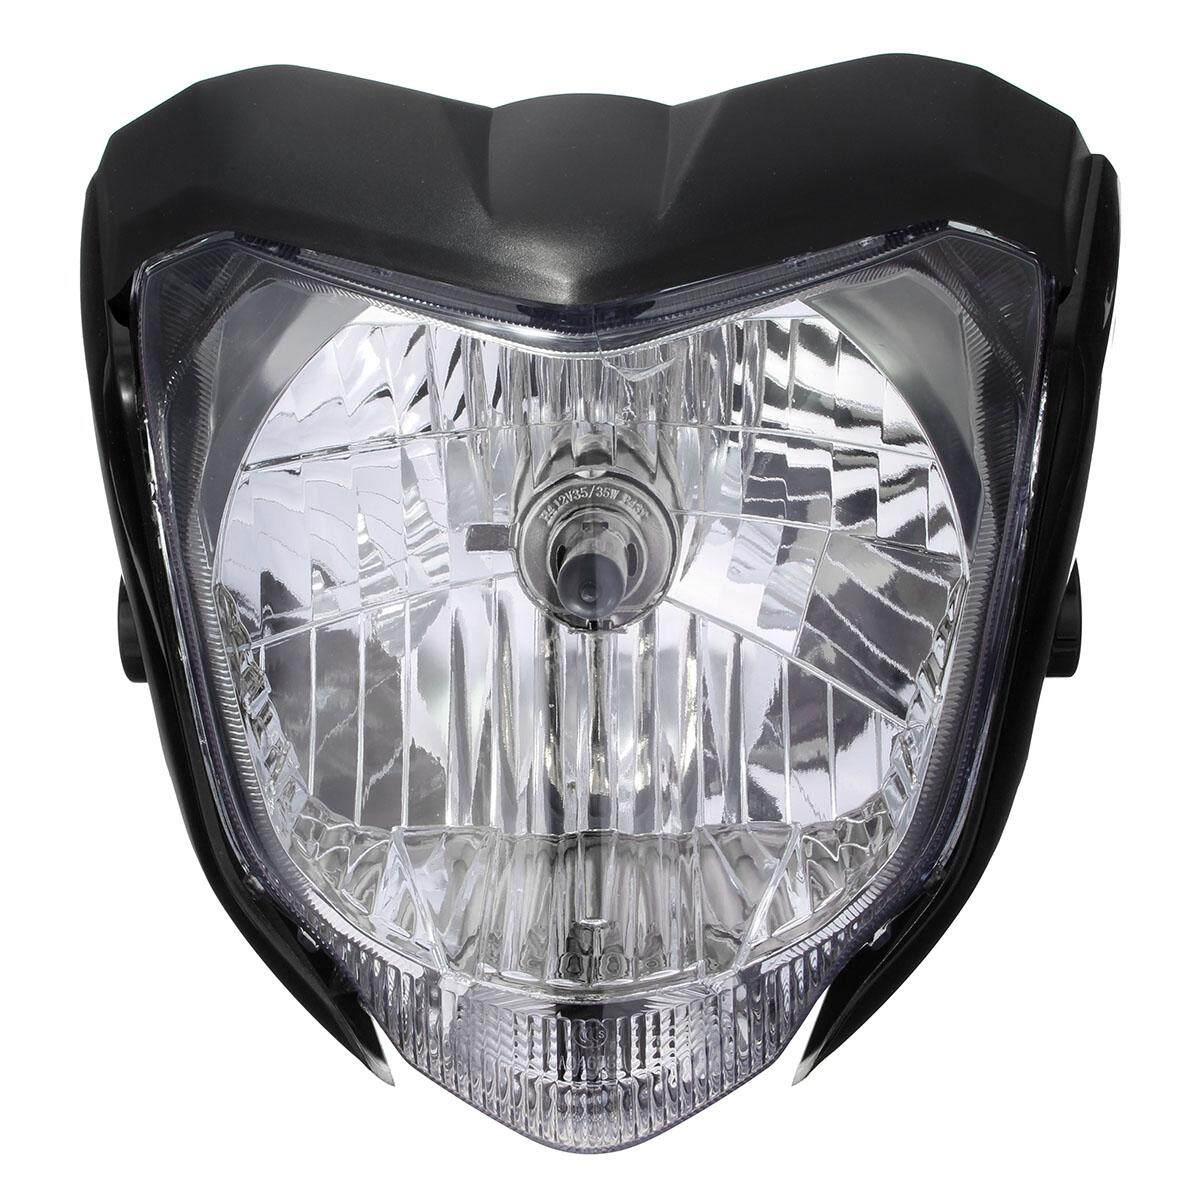 Motorcycle Head Lights For Sale Head Light Assemblies Online